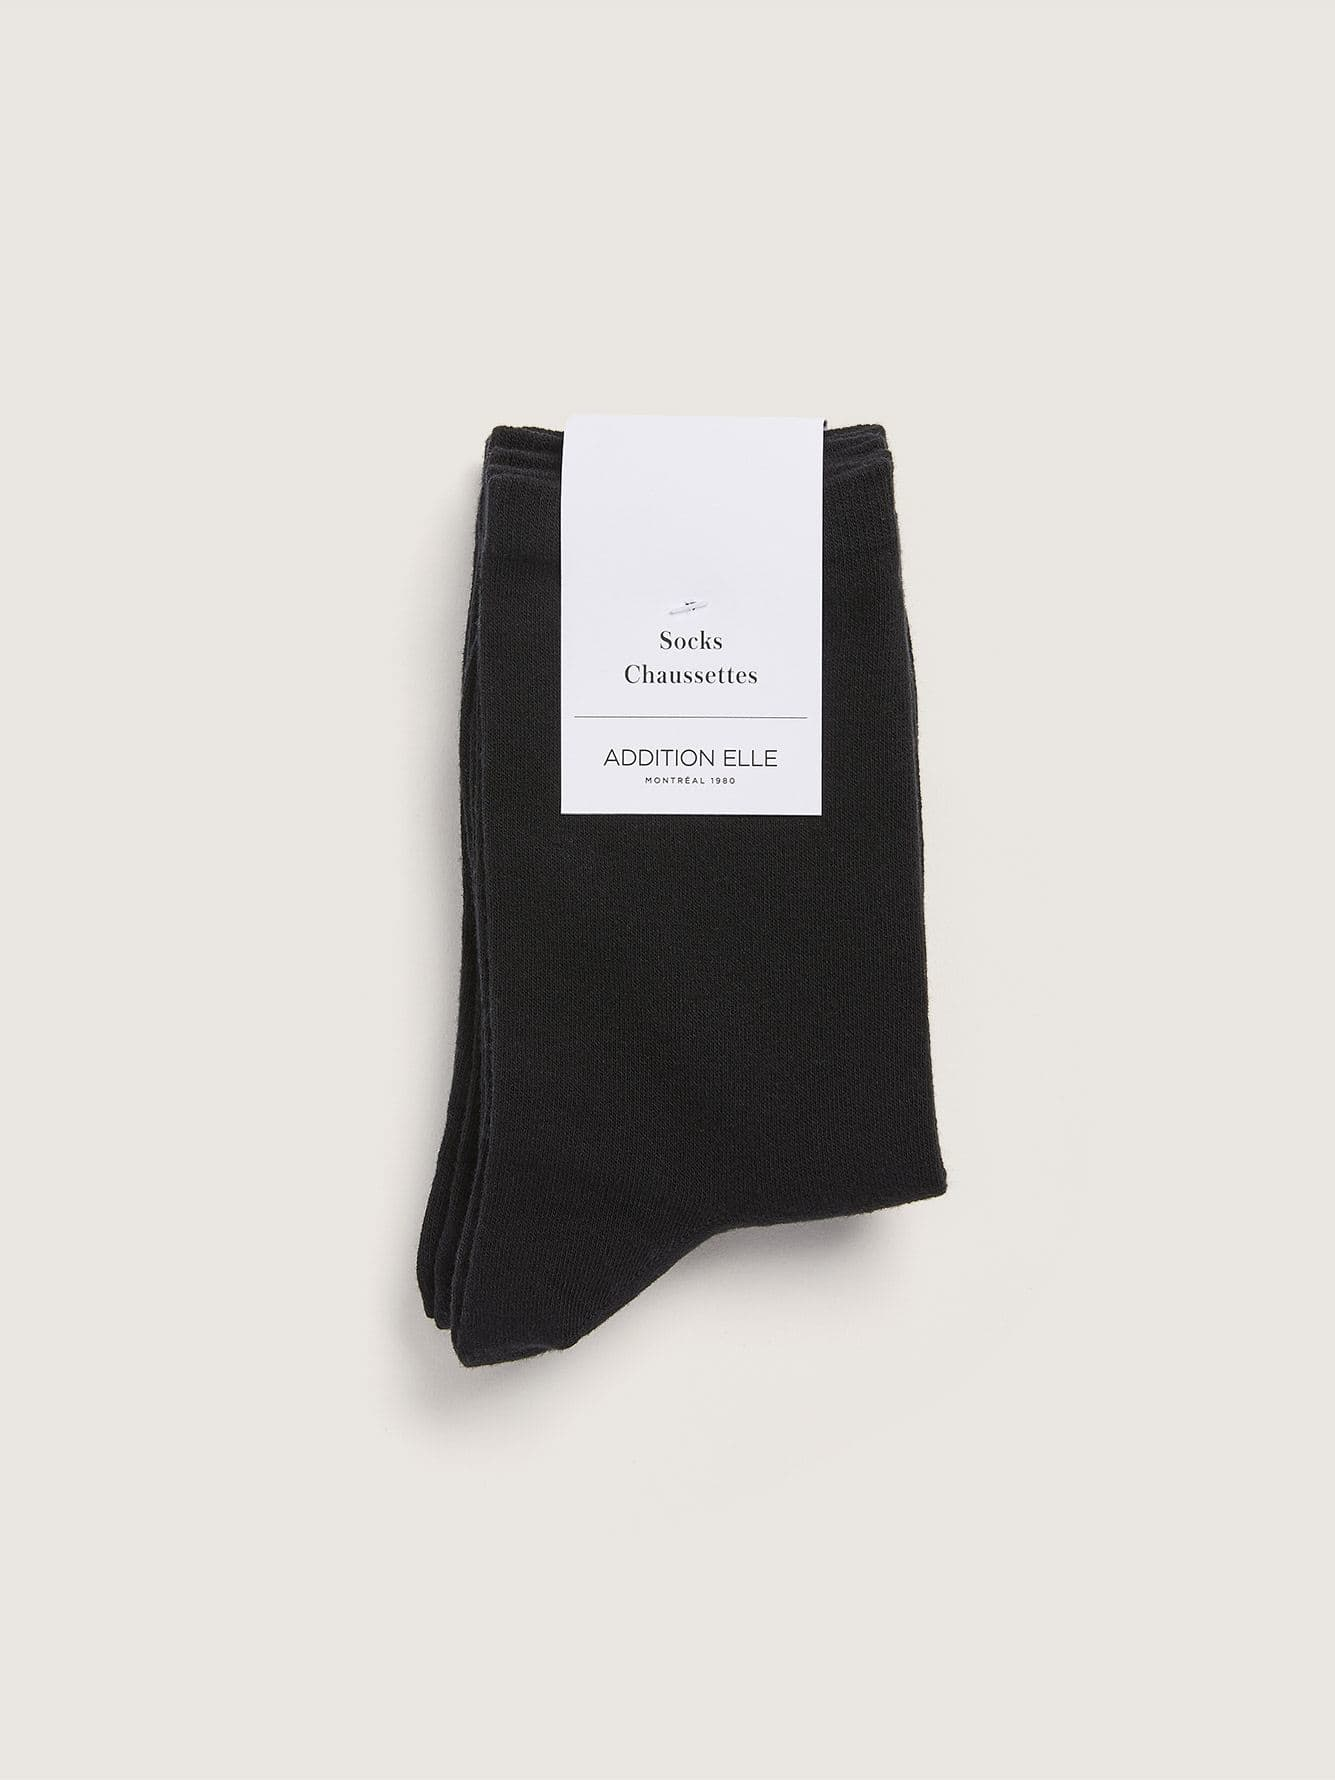 3 Pairs of Solid Cotton Socks